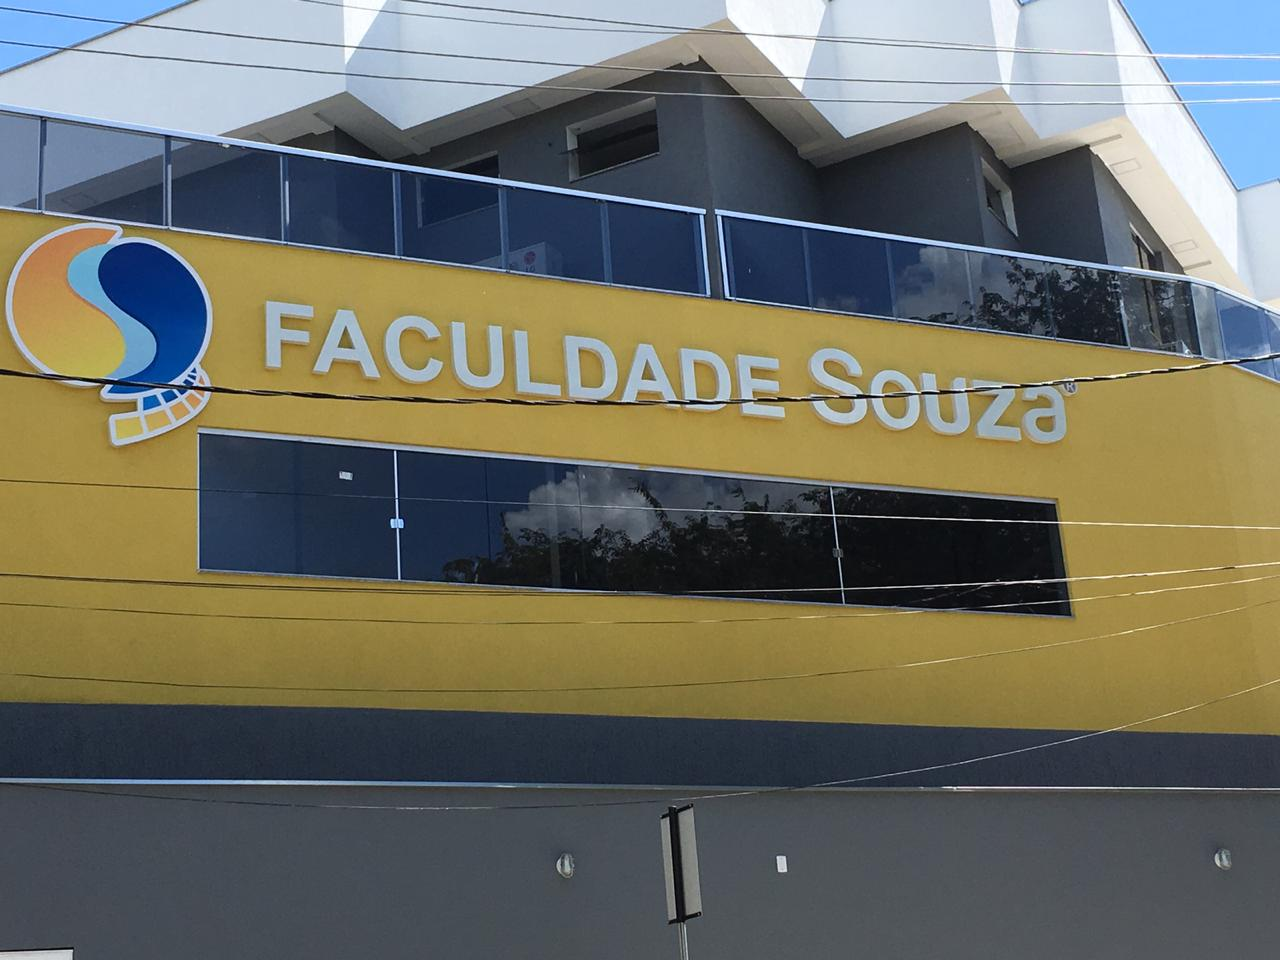 Foto09 - Sede do Instituto Souza e Faculdade Souza Ipatinga - MG